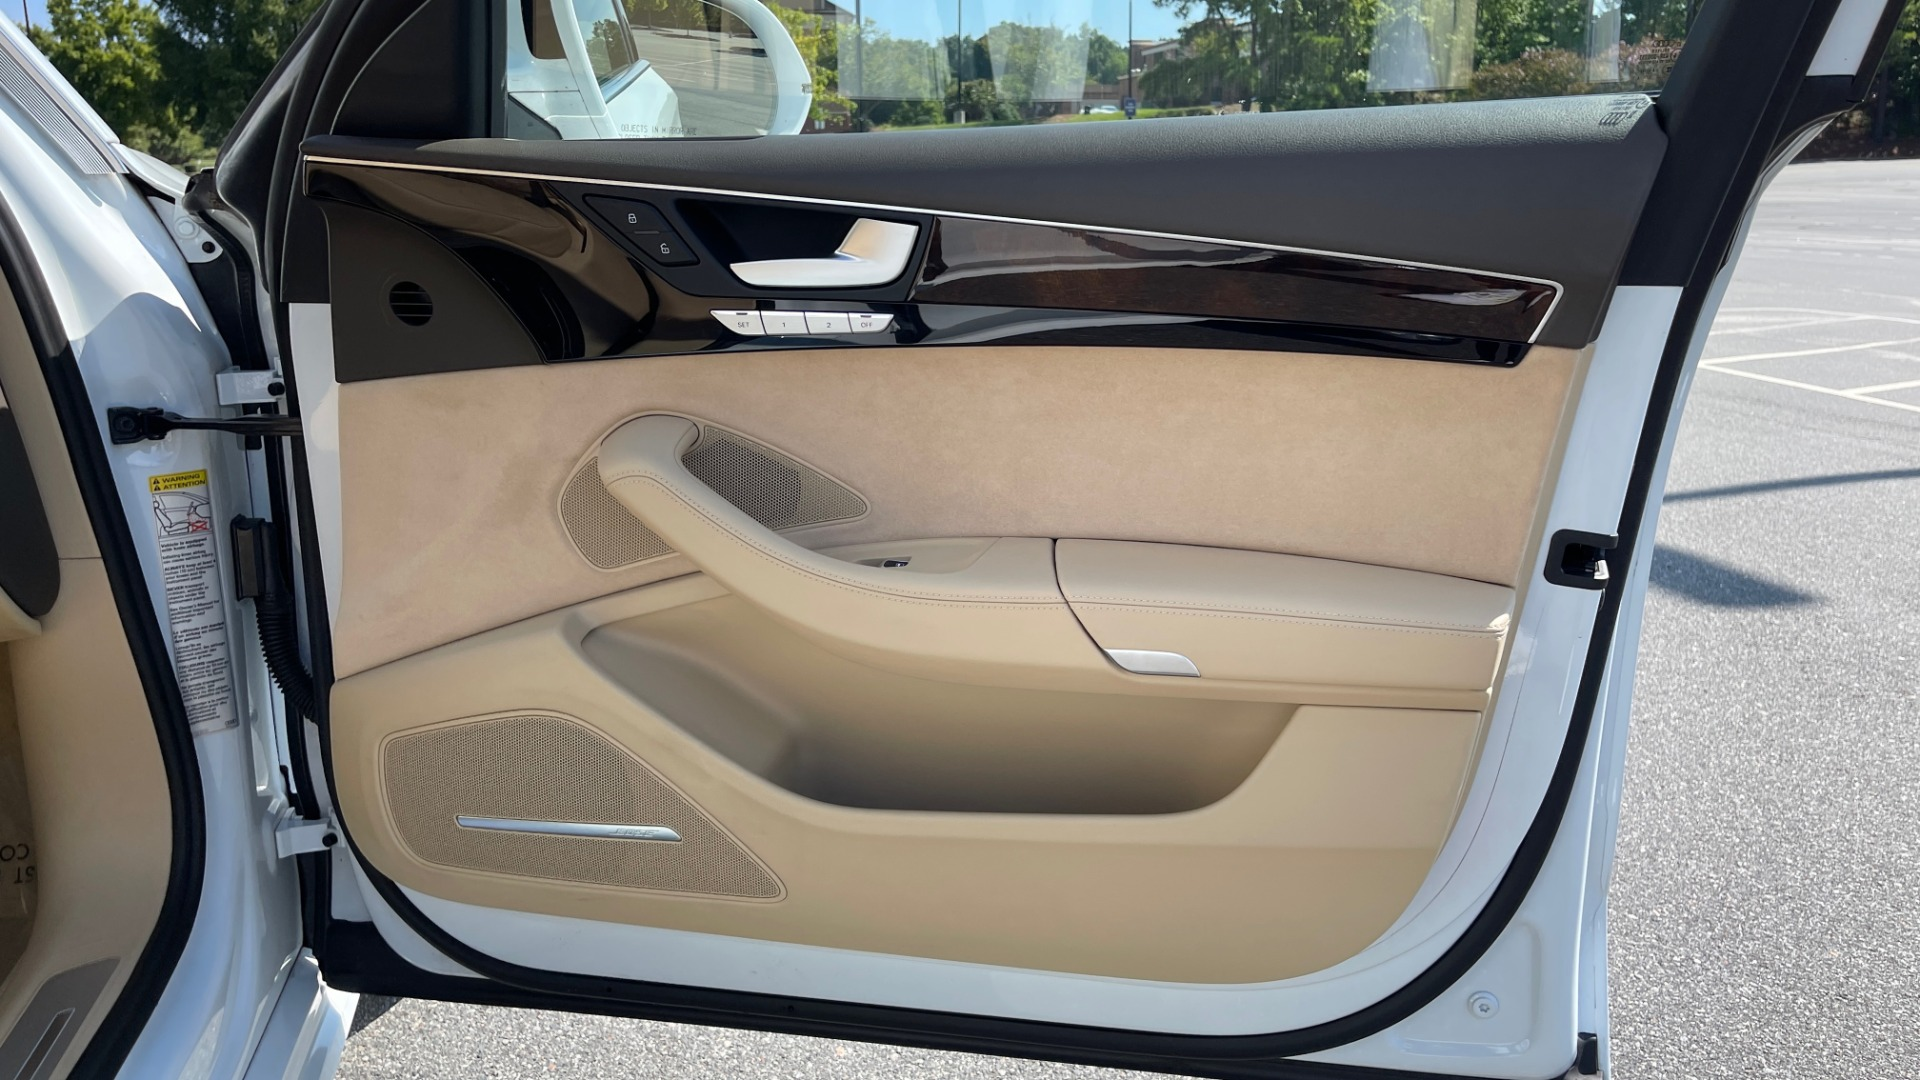 Used 2018 Audi A8 L SPORT 4.0T / EXECUTIVE PKG / NAV / BOSE / SUNROOF / REARVIEW for sale Sold at Formula Imports in Charlotte NC 28227 77